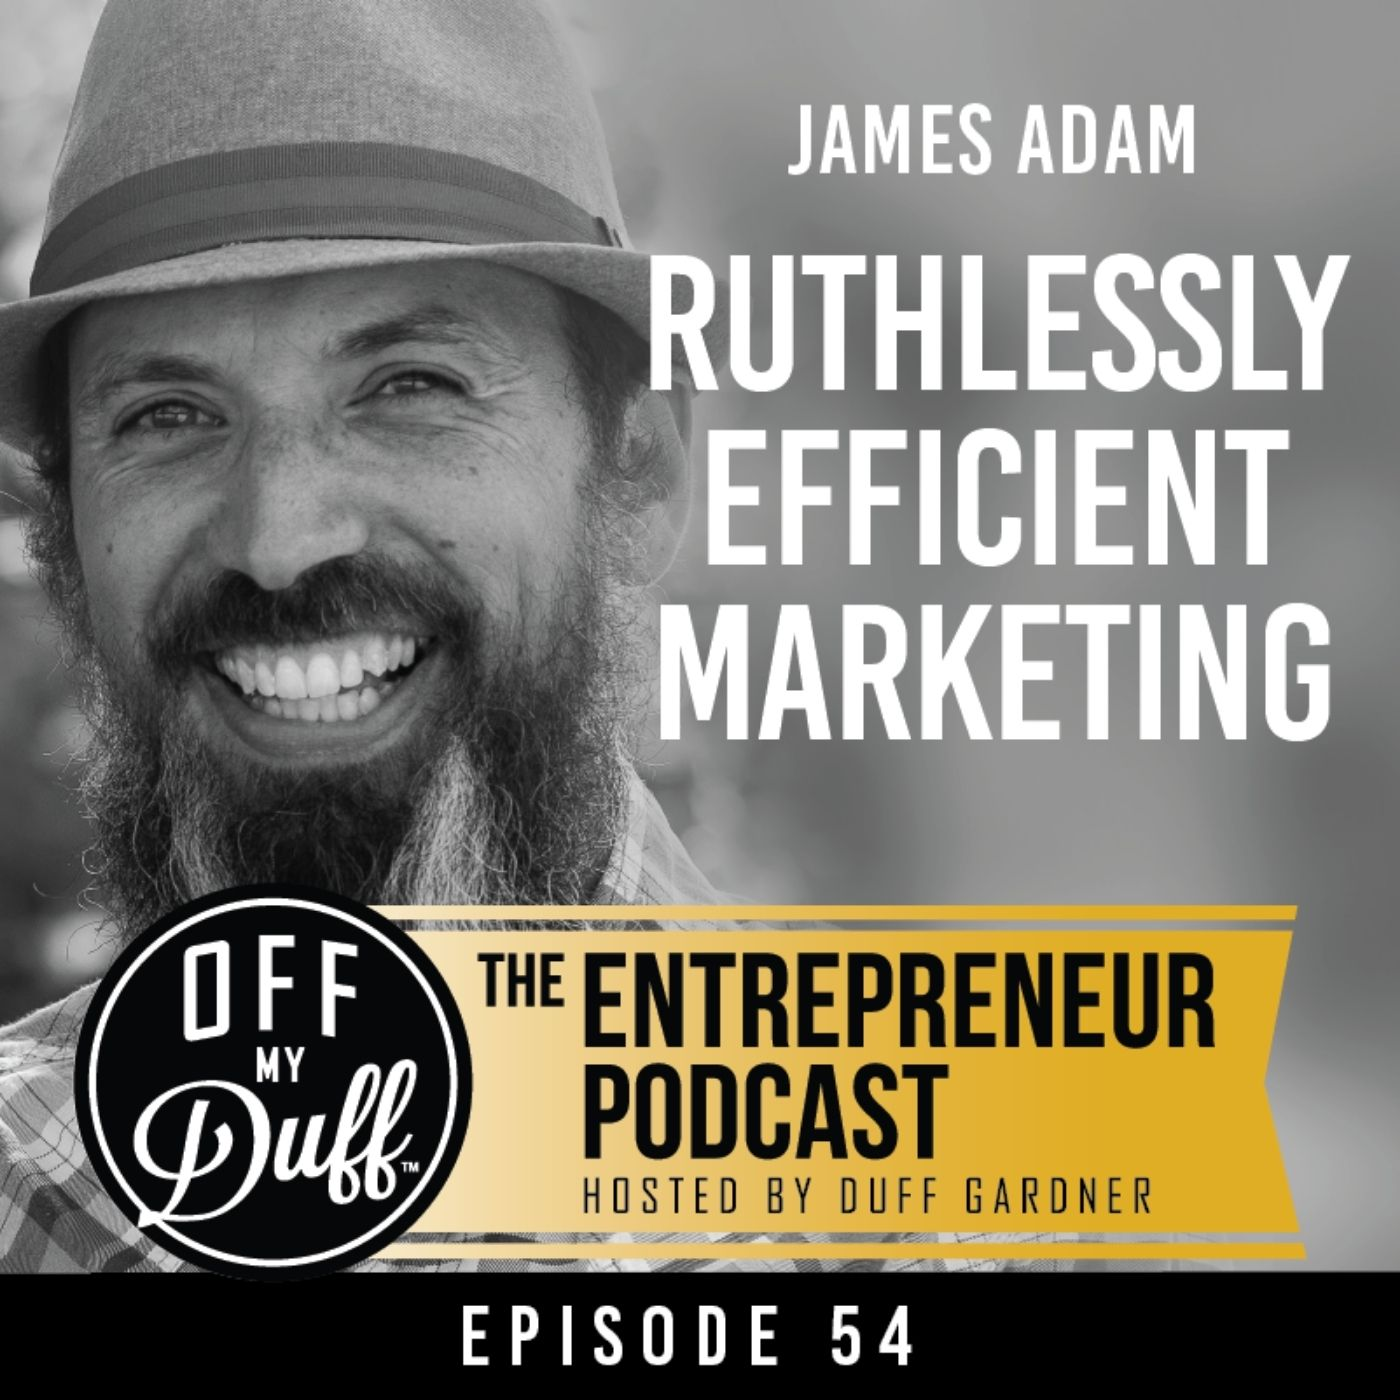 Artwork for podcast Off My Duff - The Entrepreneur Podcast